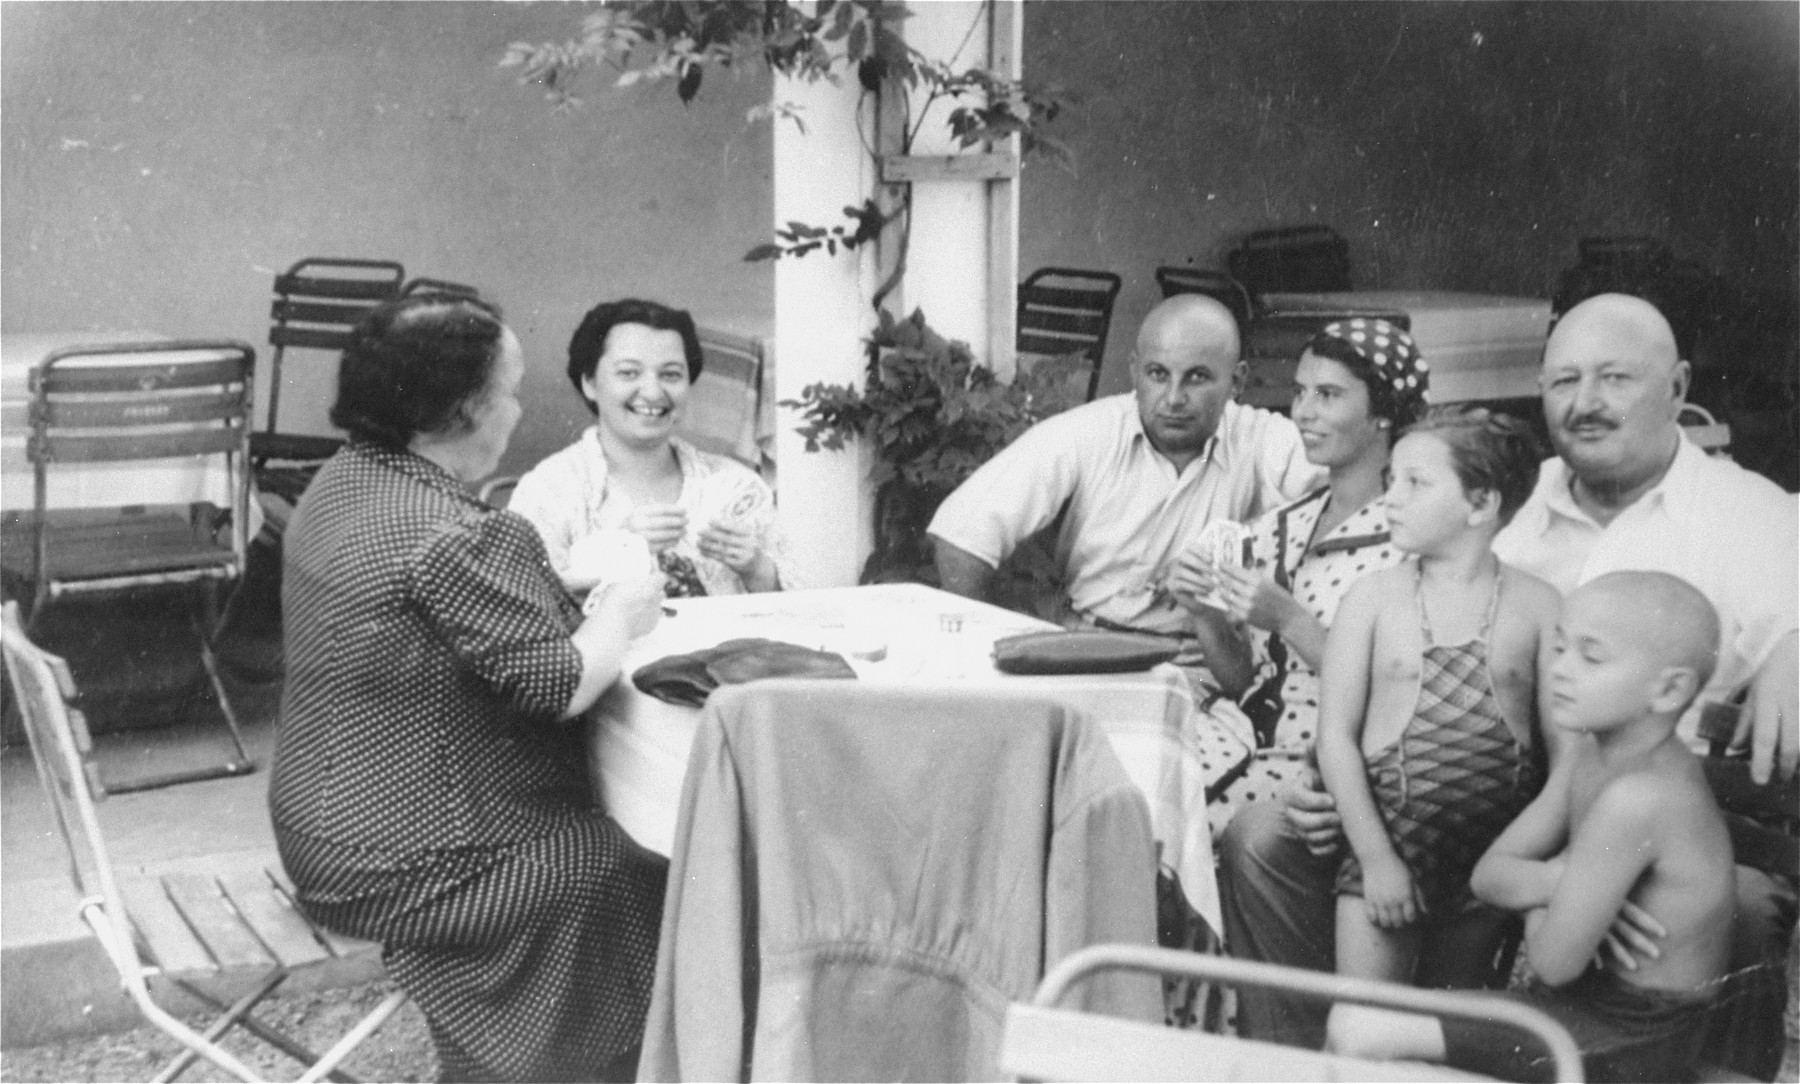 The Muller and Herzog families play cards at a resort hotel in Czechoslovakia.  Pictured at the far left are Lilly Herzog and the donor, Magda Herzog Muller; at the far right is Jakub Herzog with his two grandchildren, Alice and Heinrich.